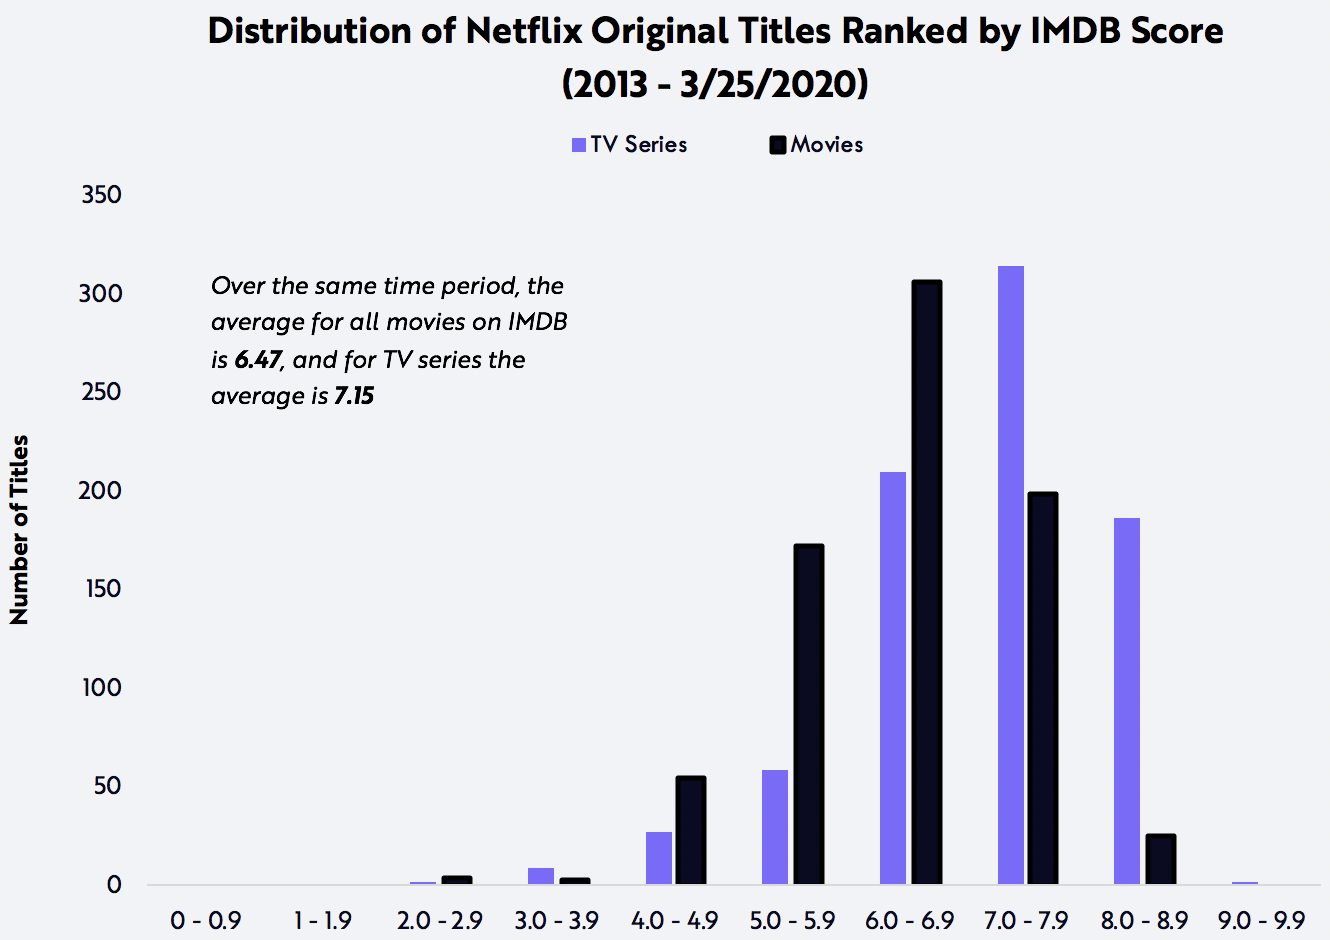 Netflix, Digital, Video Streaming, Nicholas Grous, ARK Invest